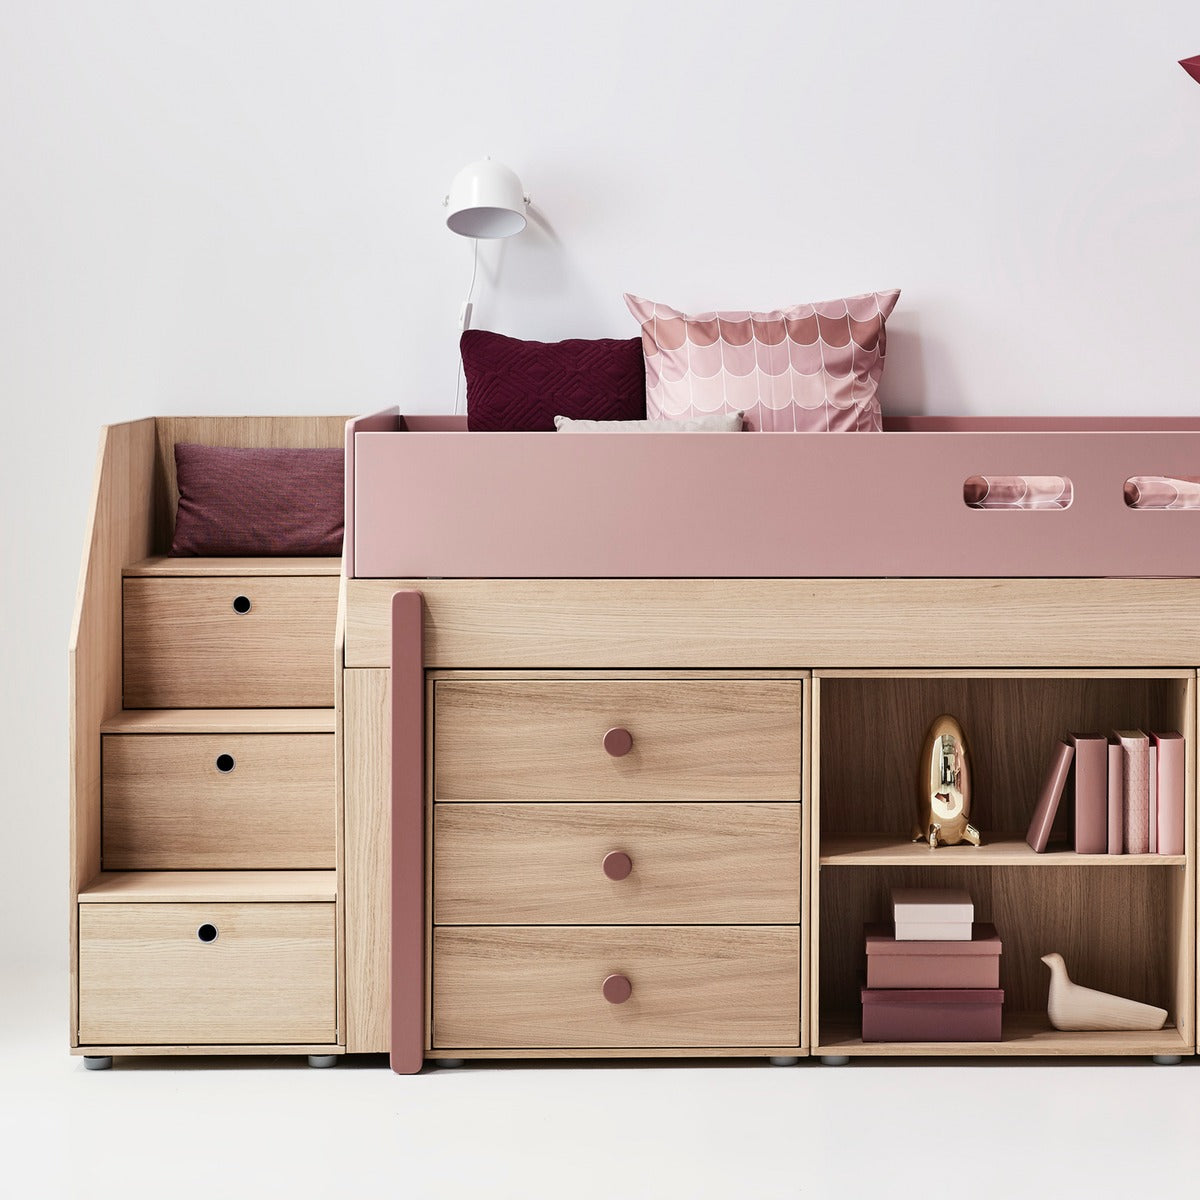 flexa kommode popsicle aus holz in rosa online kaufen. Black Bedroom Furniture Sets. Home Design Ideas